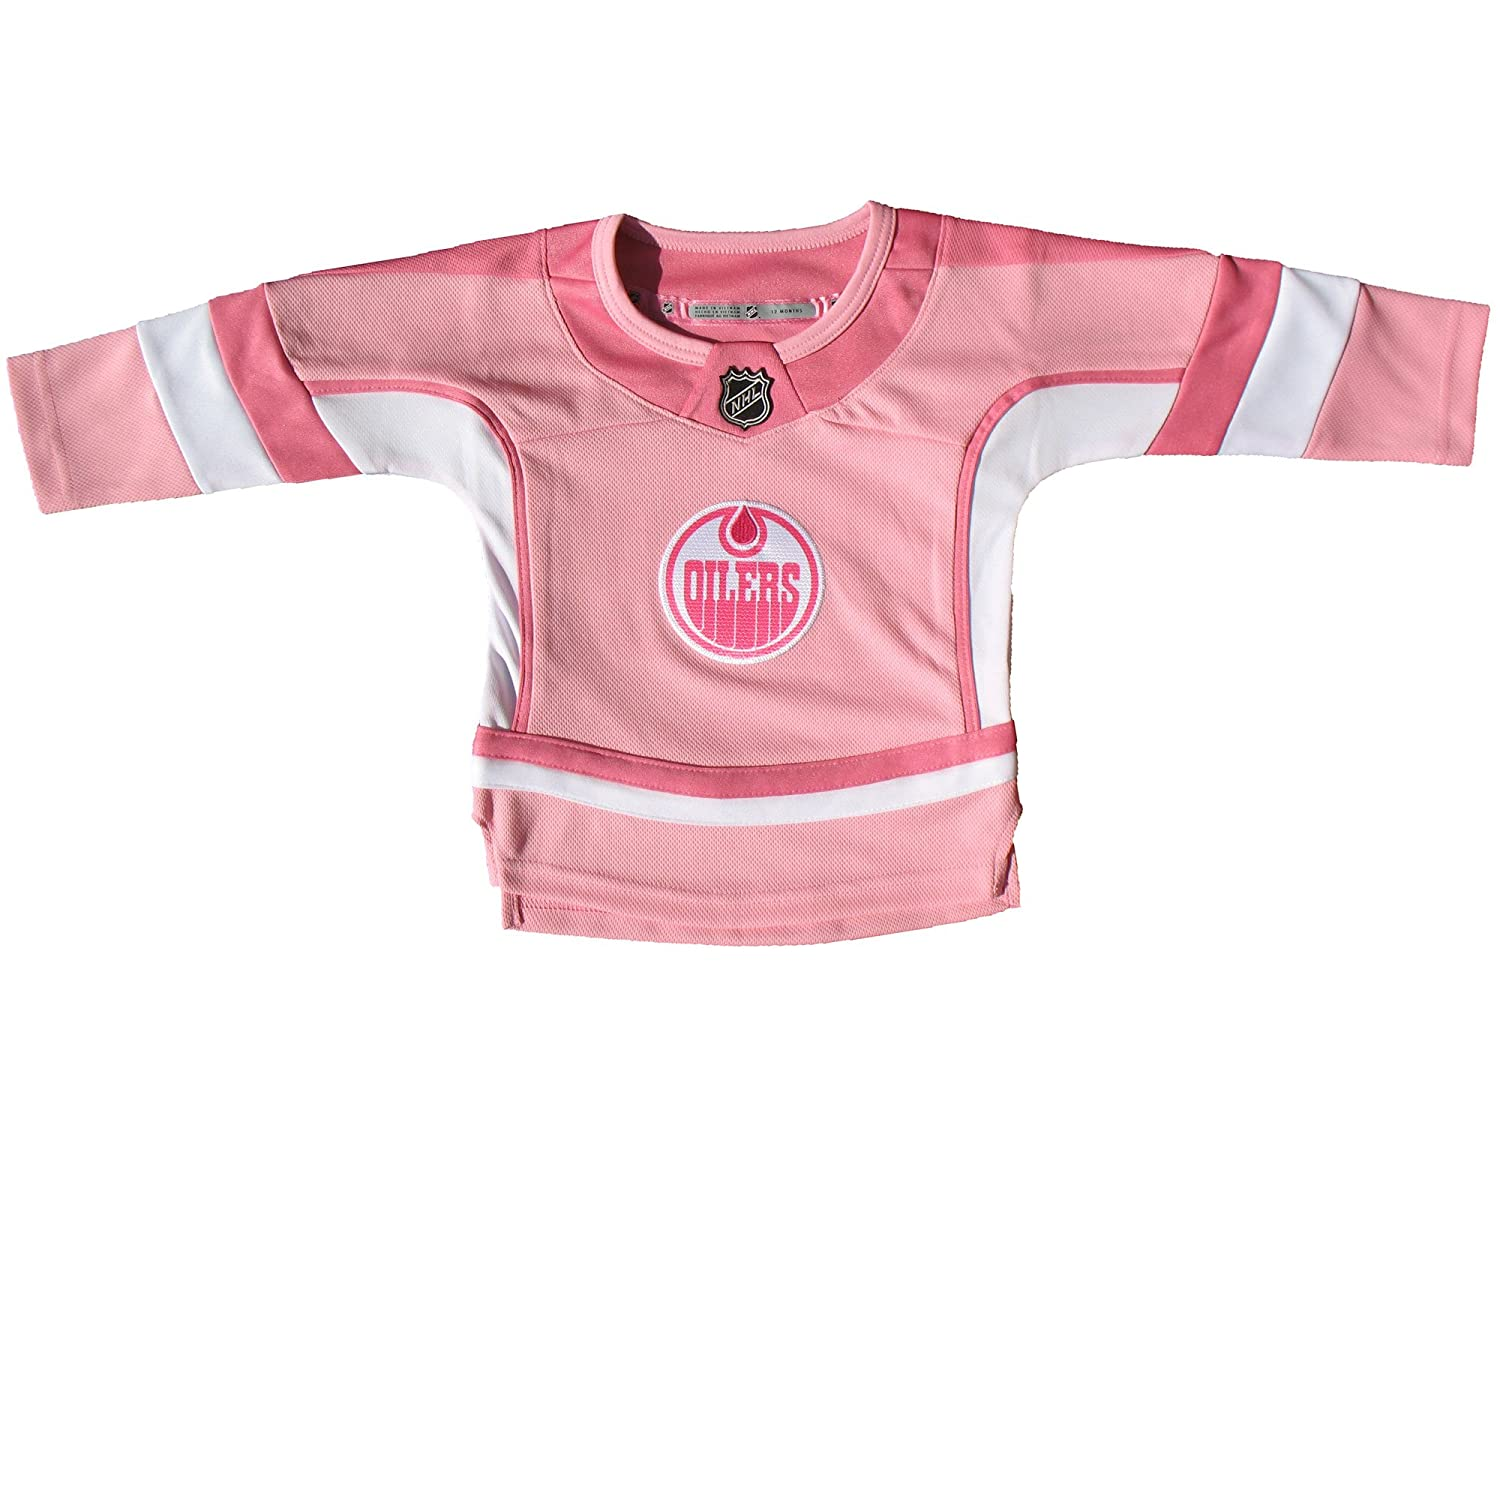 Edmonton Oilers Toddler Girls Pink Fashion Jersey Outerstuff